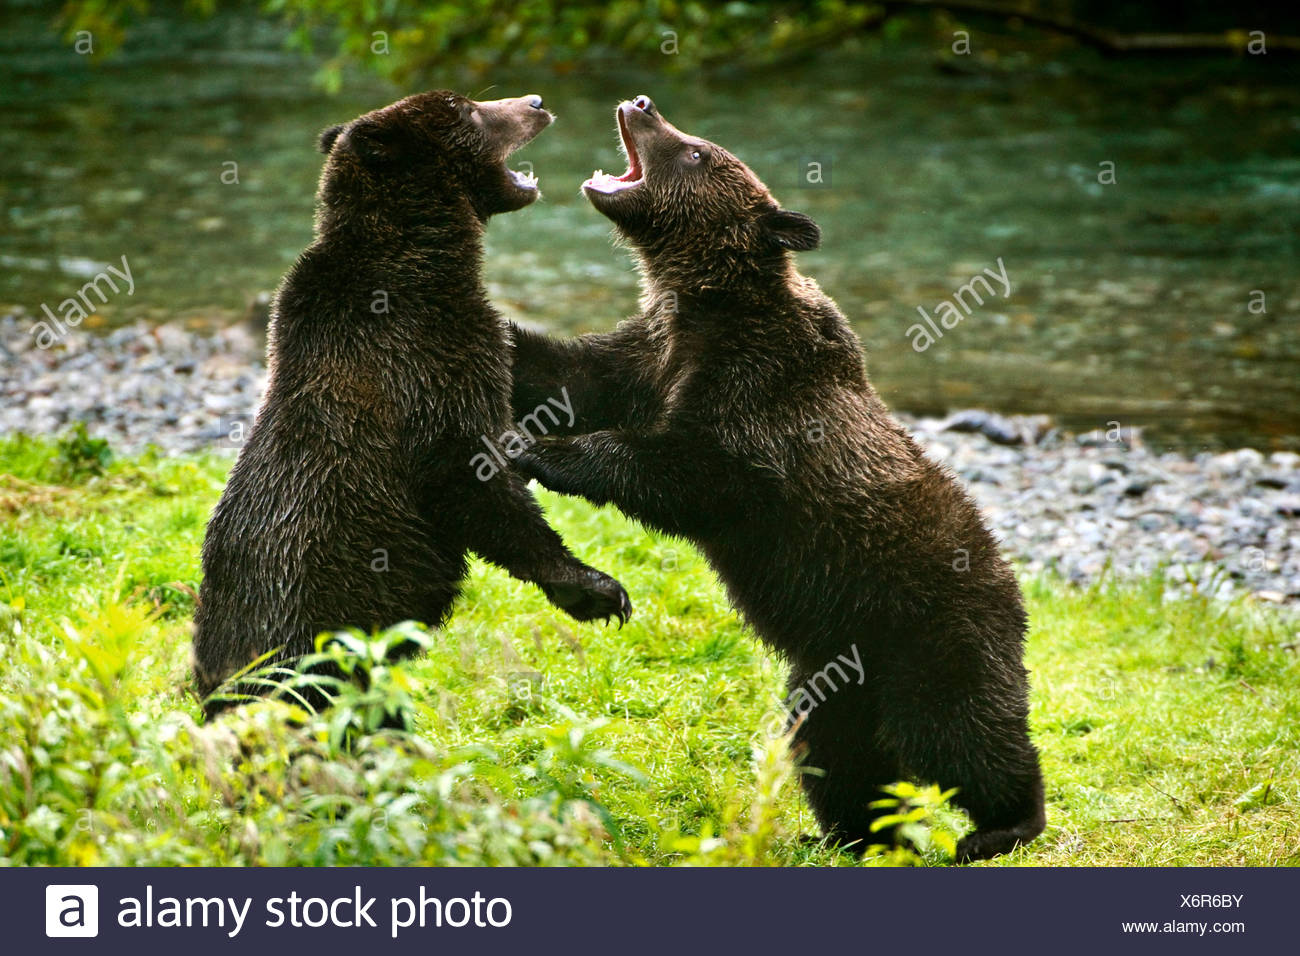 Two grizzly bears fighting - Stock Image